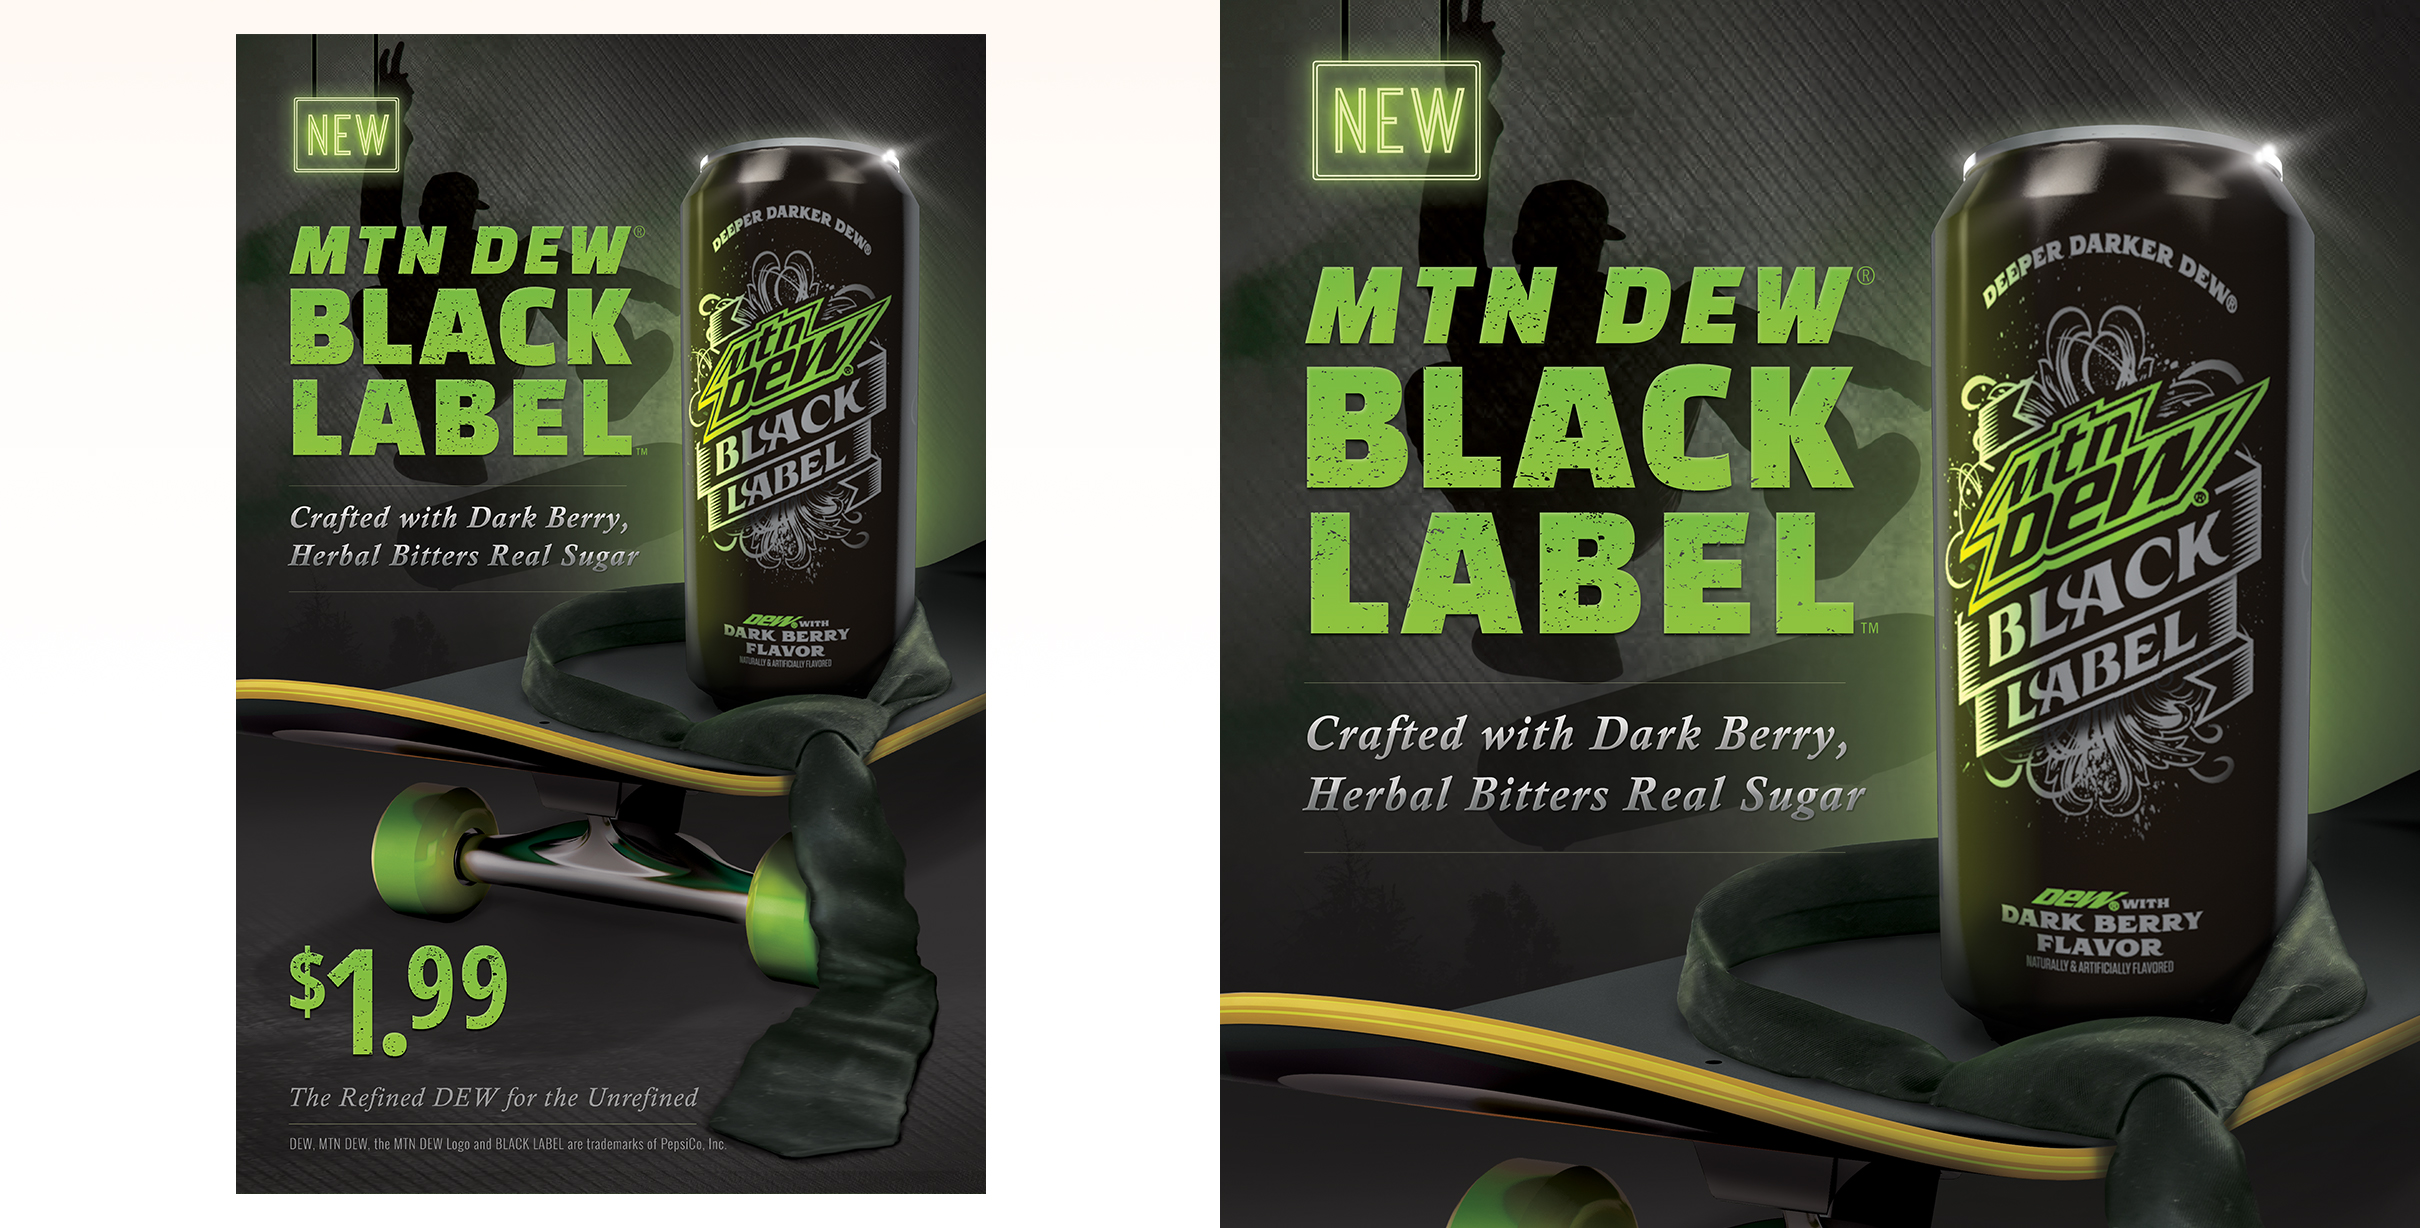 First concept for Mtn Dew Black Label